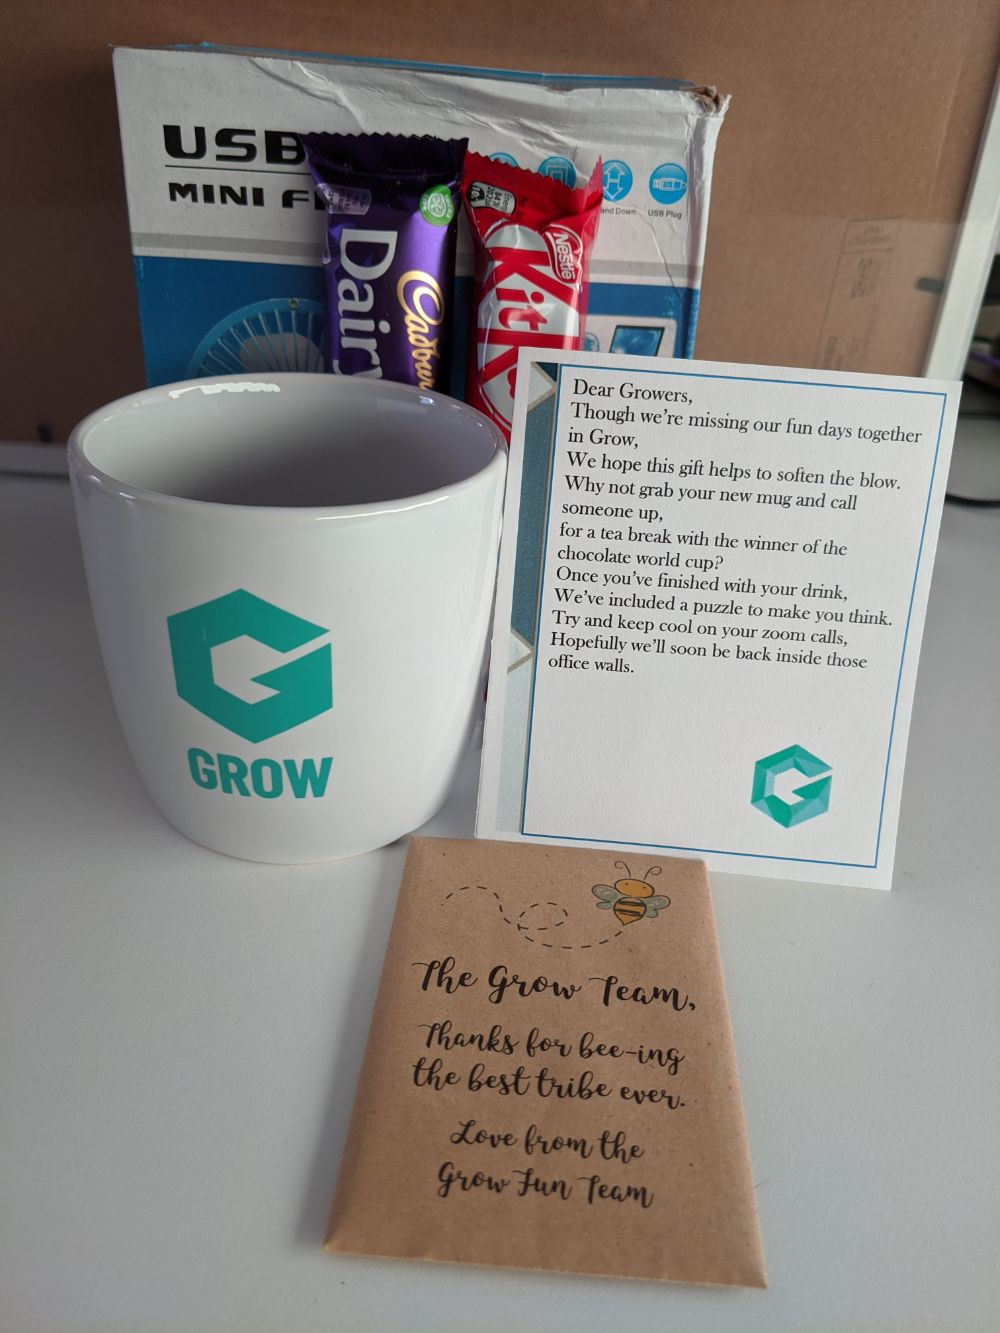 A USB fan, a Dairy Milk Bar, a KitKat, a mug with the Grow tribe logo on it, a short note, and some bee-friendly wildflower sees